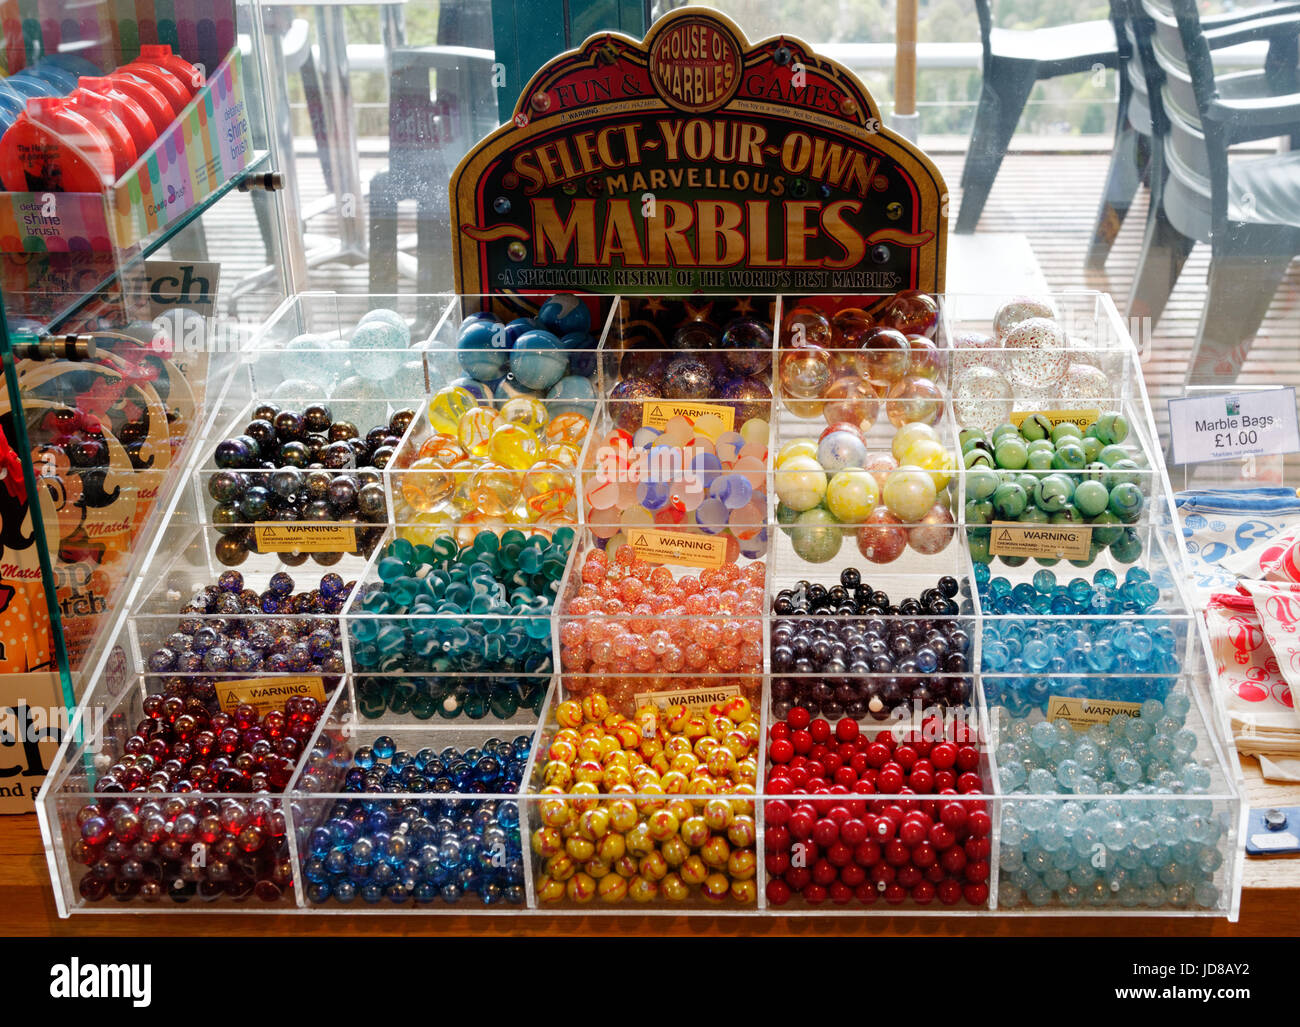 A selection of marbles - Stock Image